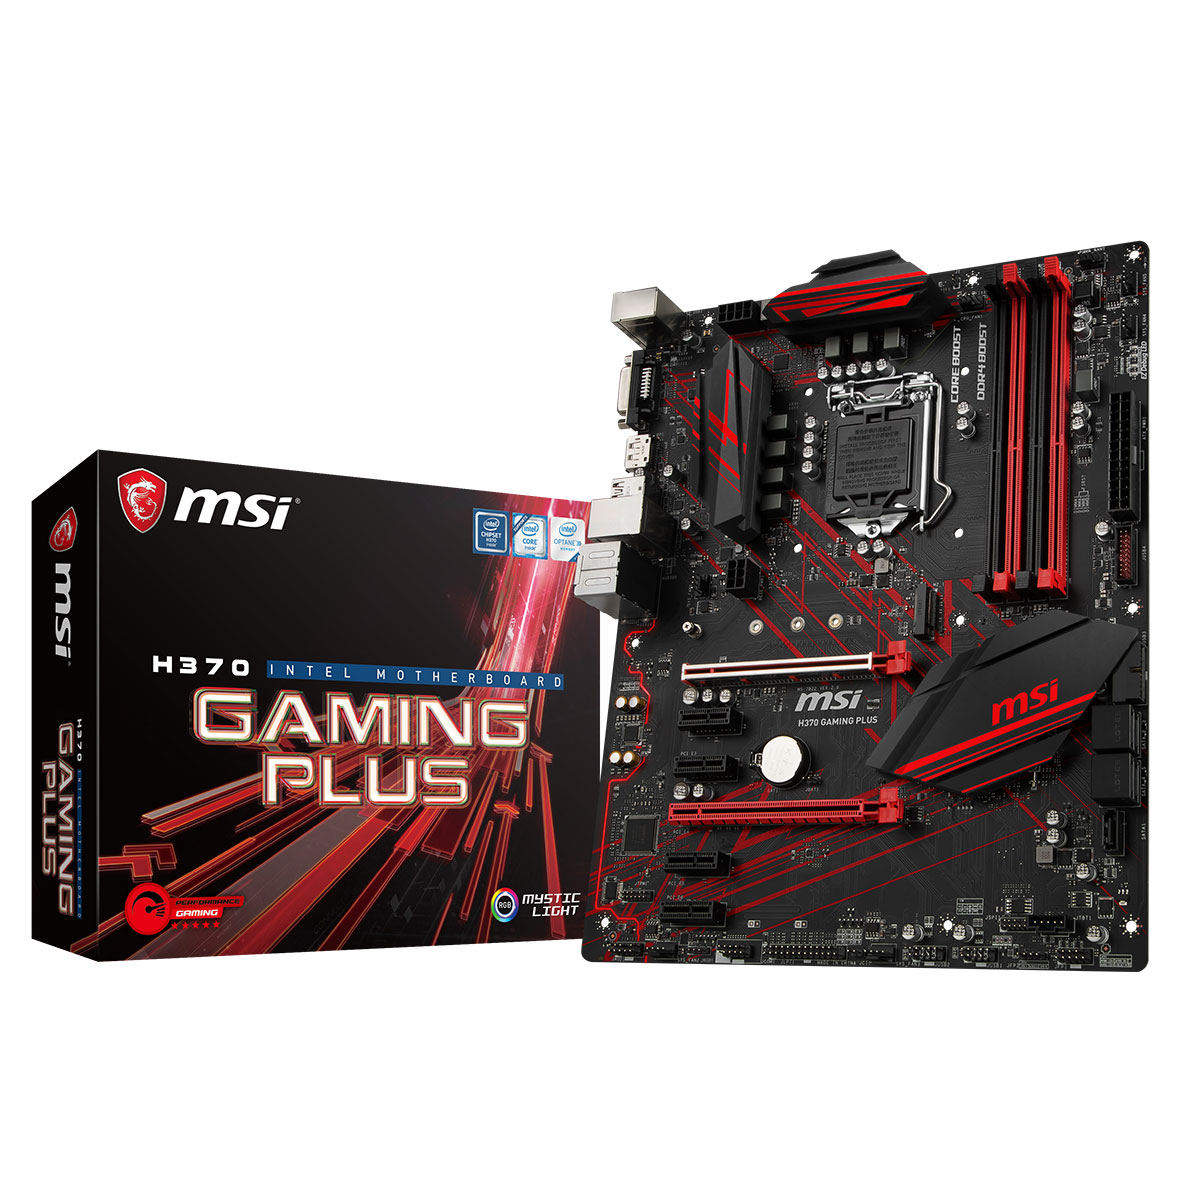 MSI H370 GAMING PLUS ATX DDR4 - Carte mère MSI - Cybertek.fr - 0